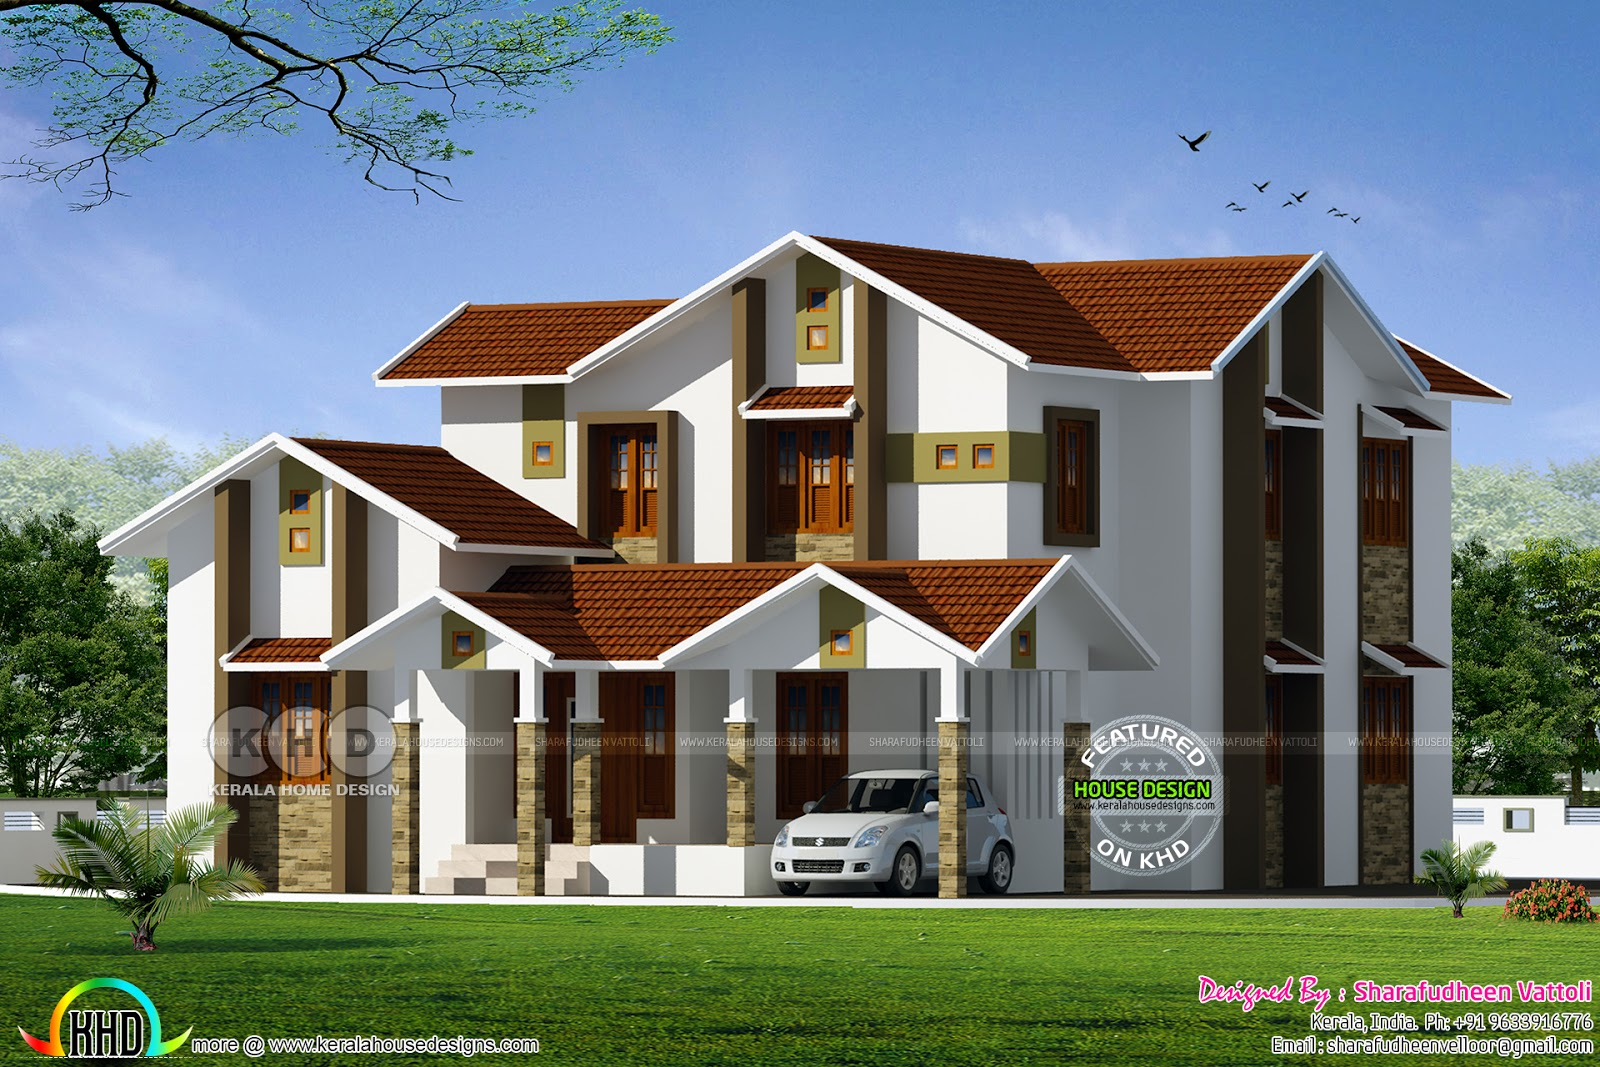 Modern Home With Floor Plan And Compound Wall Design Kerala Home Design And Floor Plans 8000 Houses